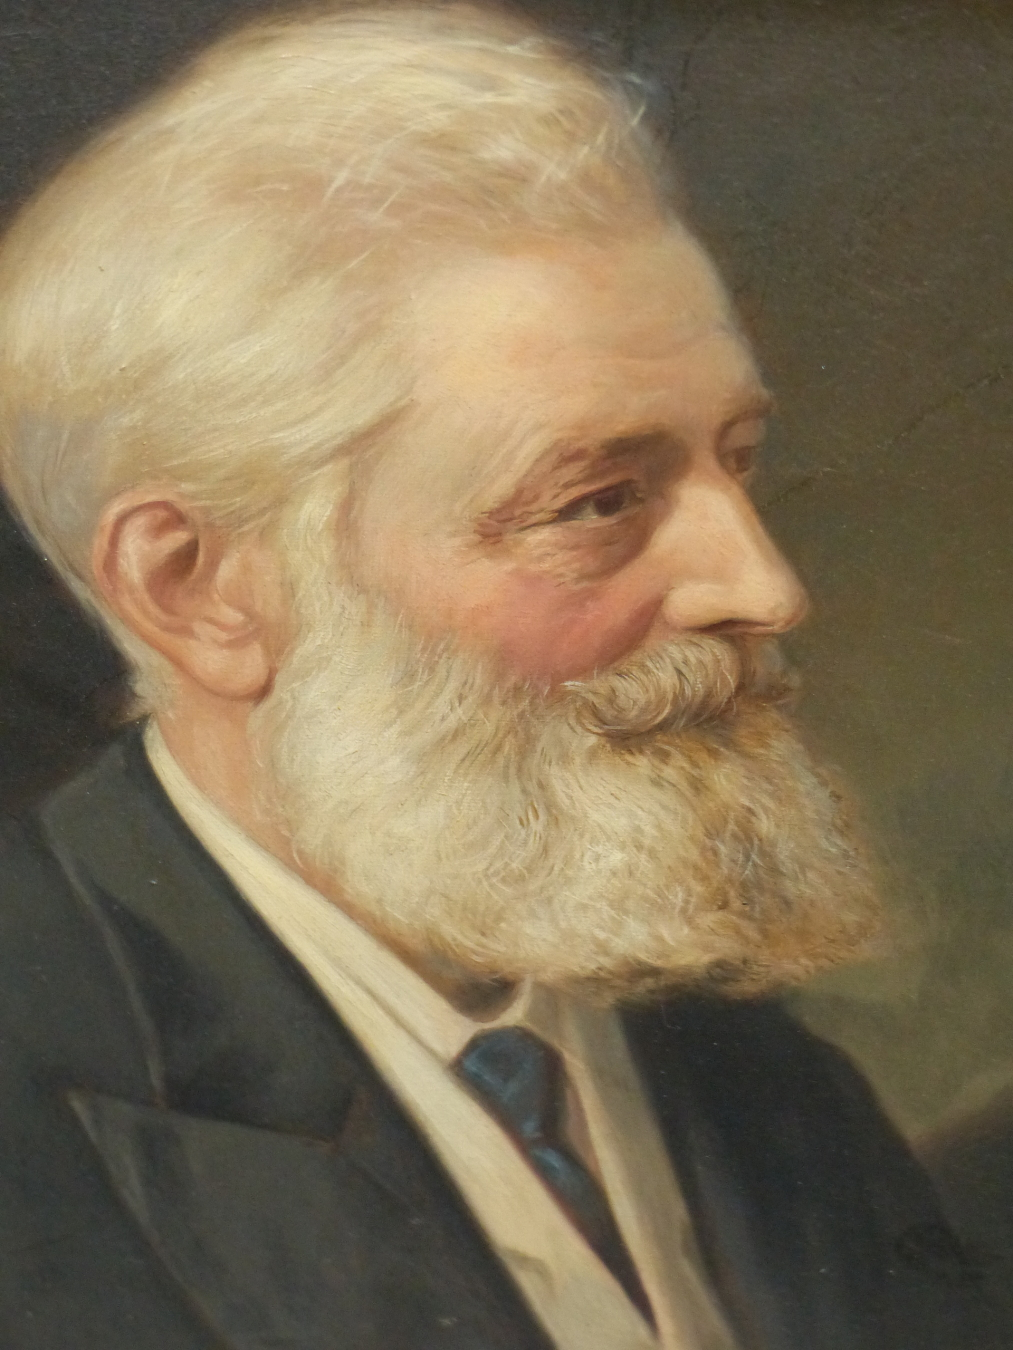 A, C. HAVELL (1855-1928) PORTRAIT OF GEORGE PHILIP BYRON FORES 1831-1916. SIGNED OIL ON CANVAS. 33 X